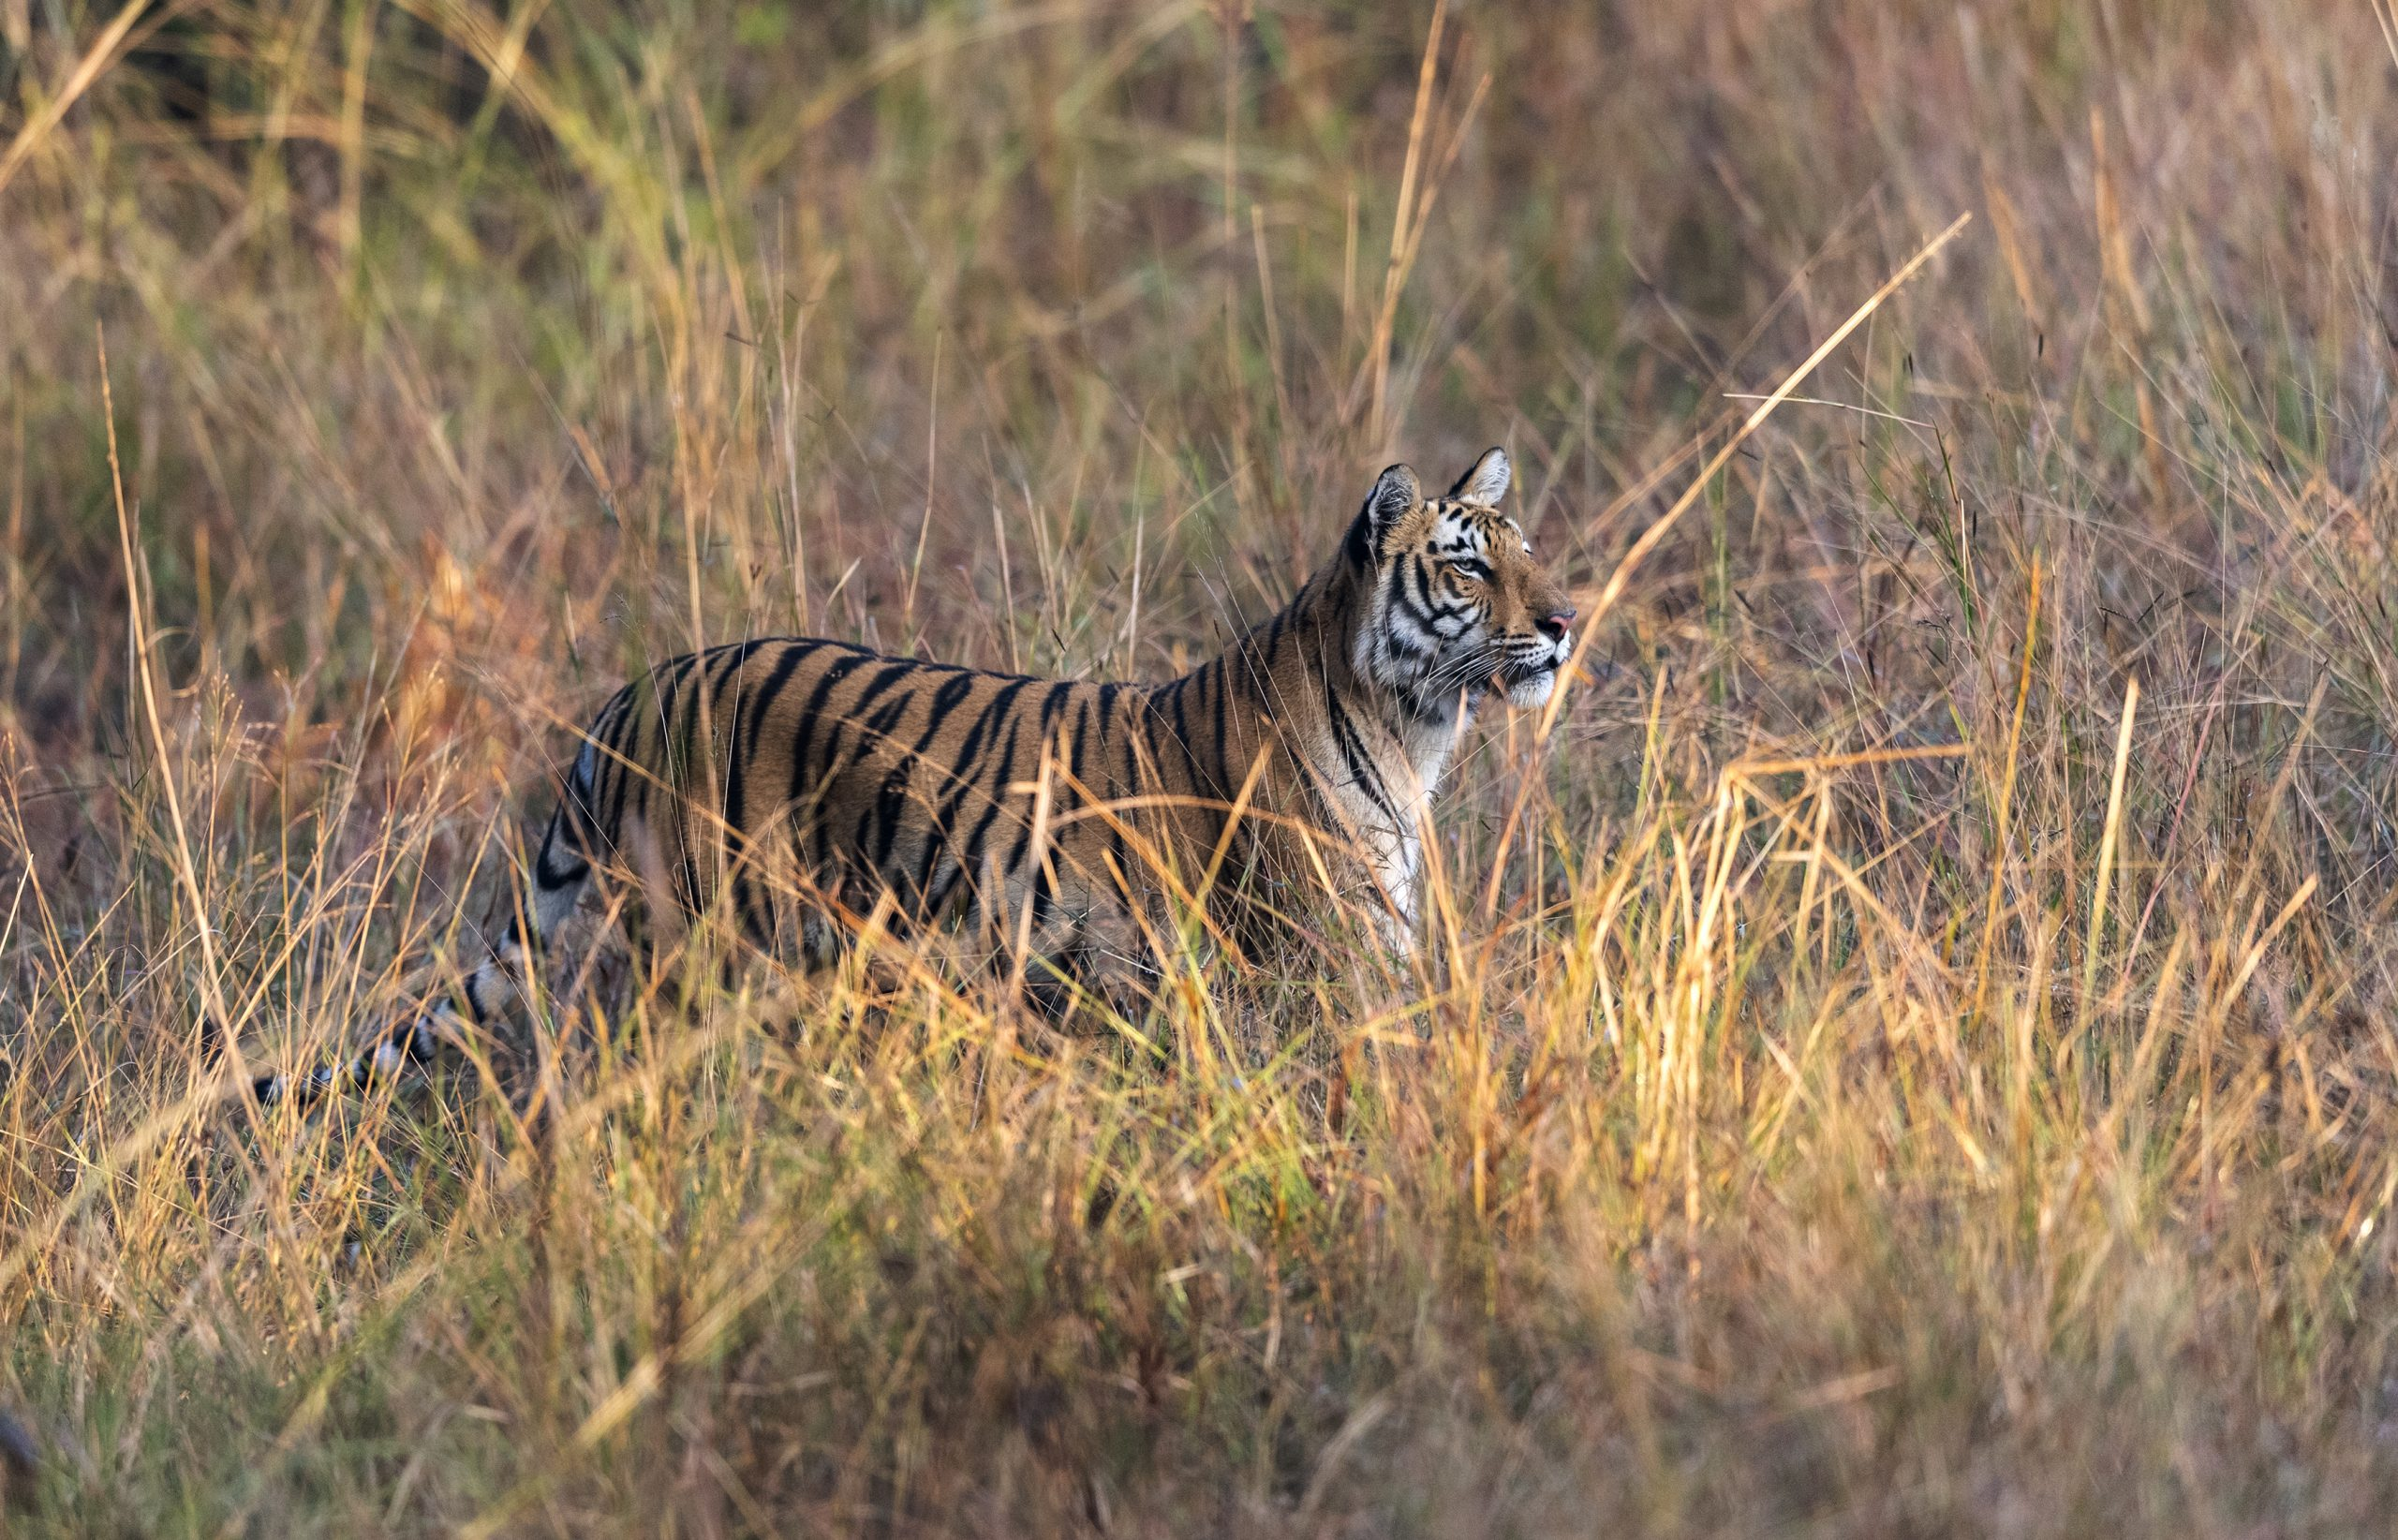 A Tiger in wildlife sanctuary